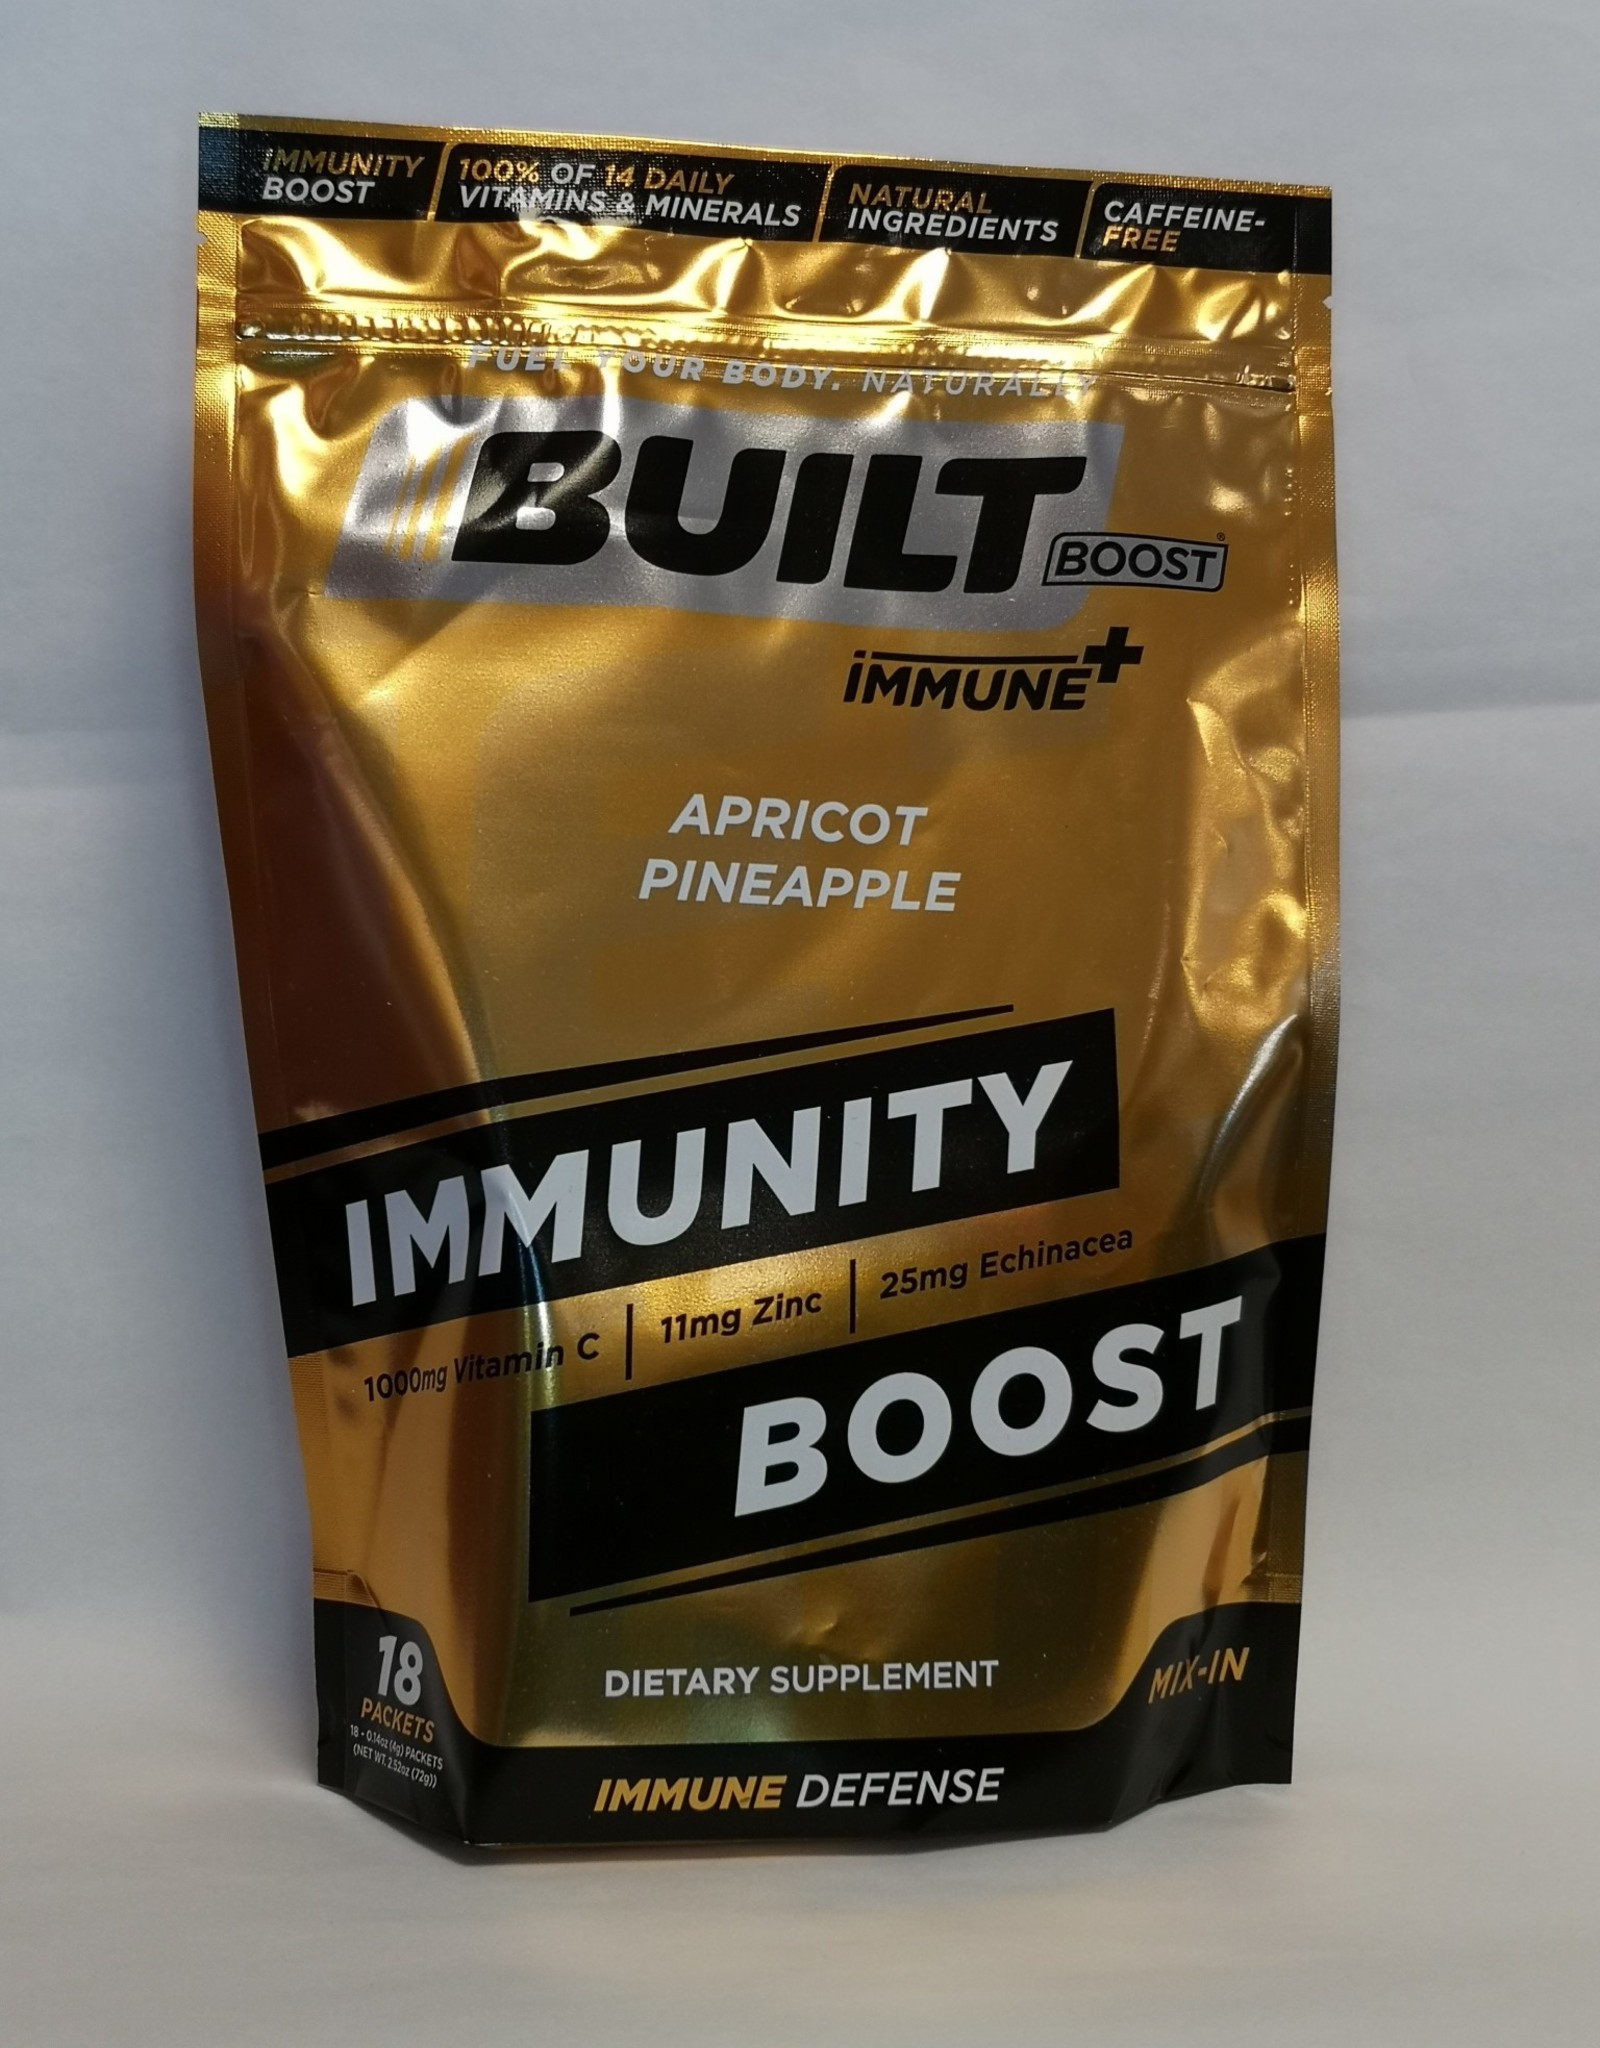 Built Bar Wholesale Built Bar - Built Boost Immune +, Apricot Pineapple  (18 Ct) - CASE